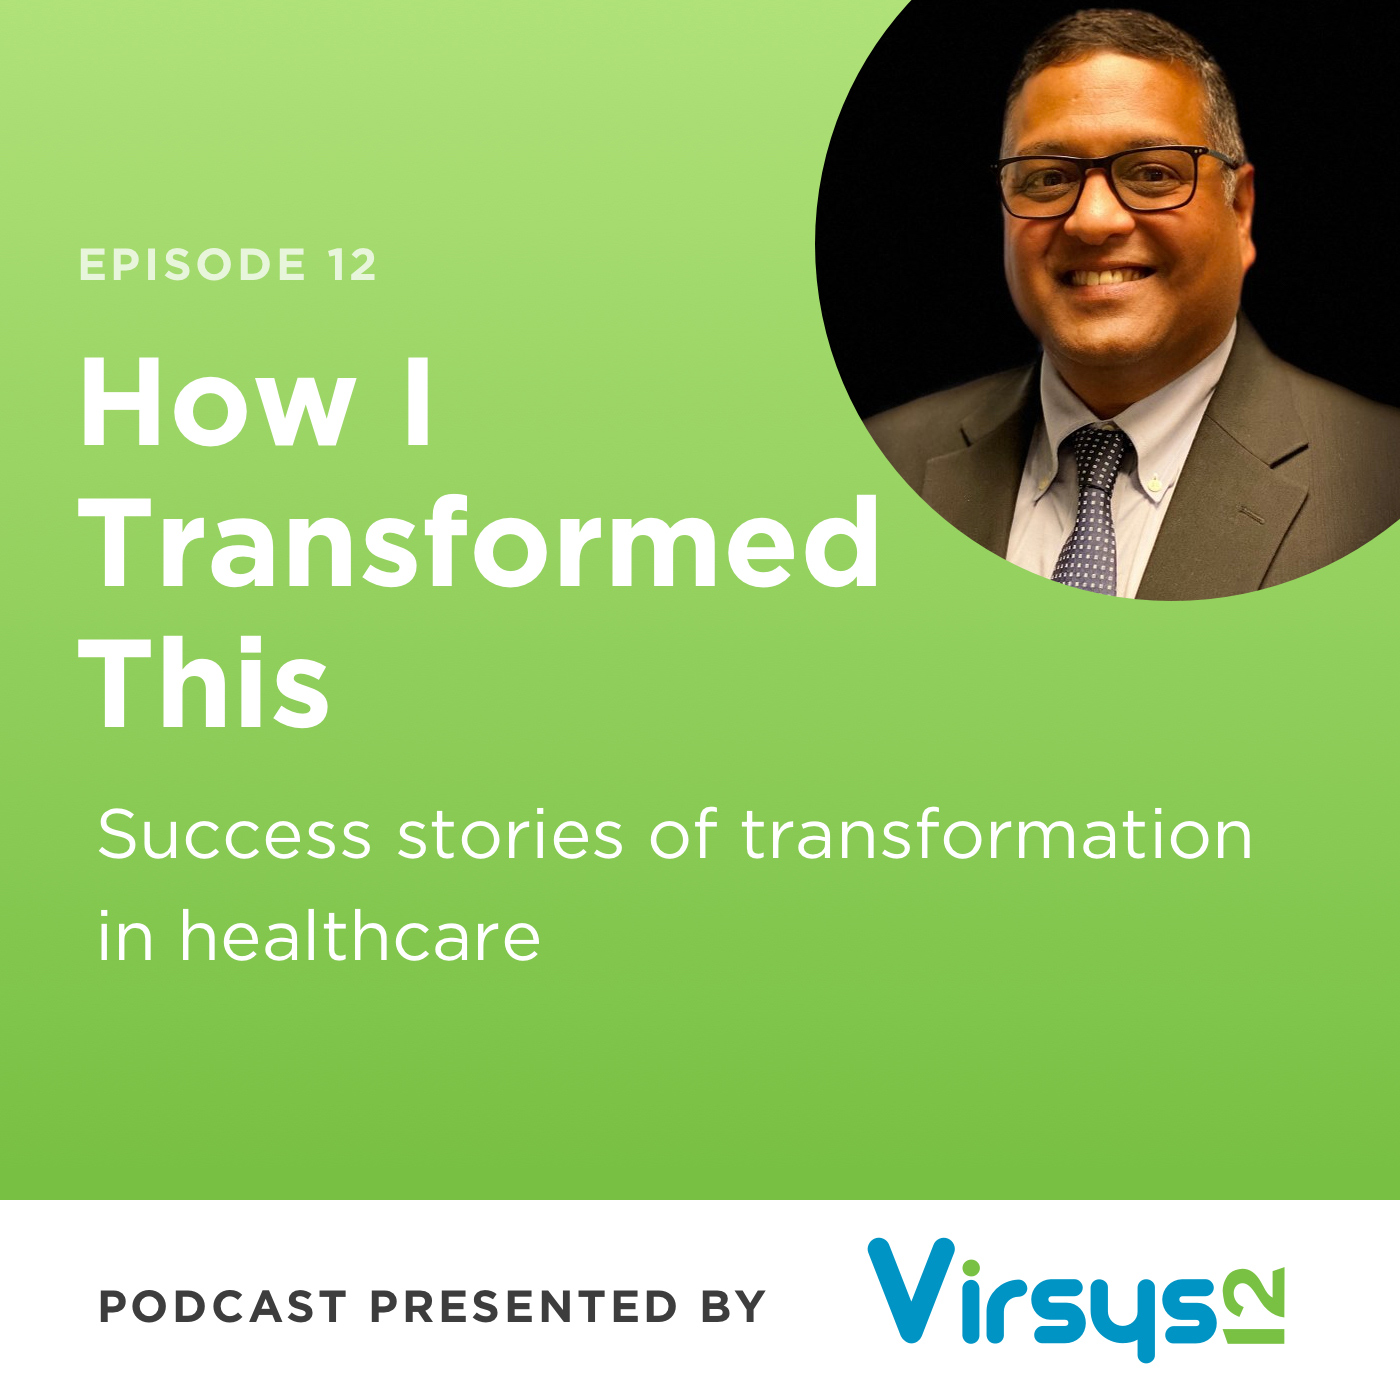 Neal Patel: Bridging the Gap Between IT and Clinicians